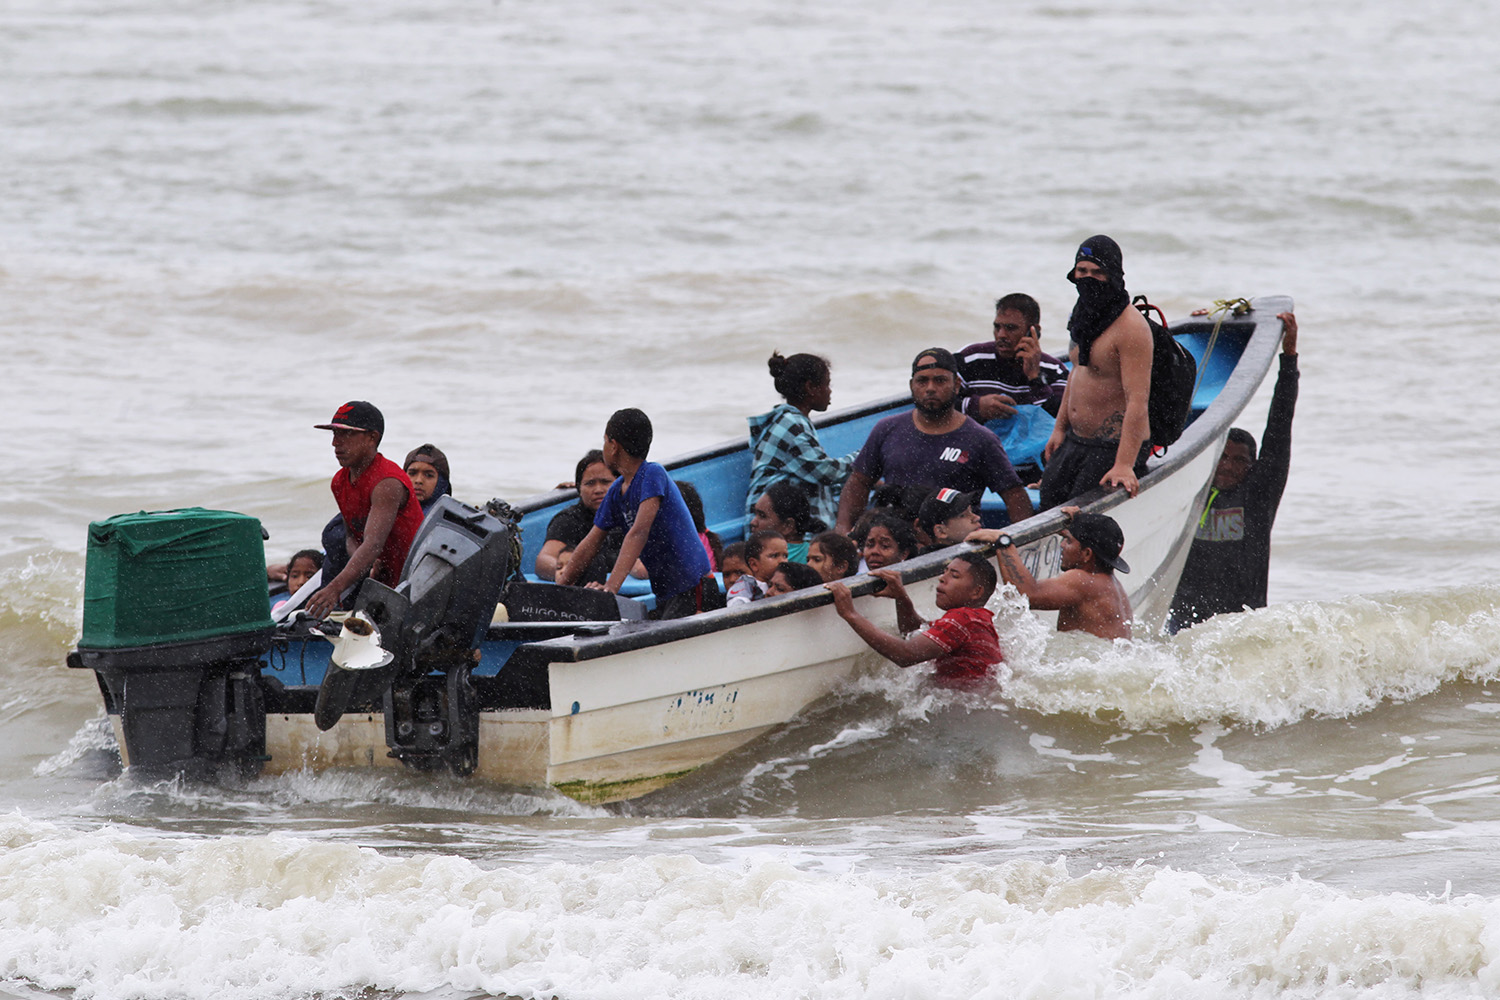 Boats over troubled waters: Caribbean nations struggle with response to Venezuelan migration crisis – Atlantic Council